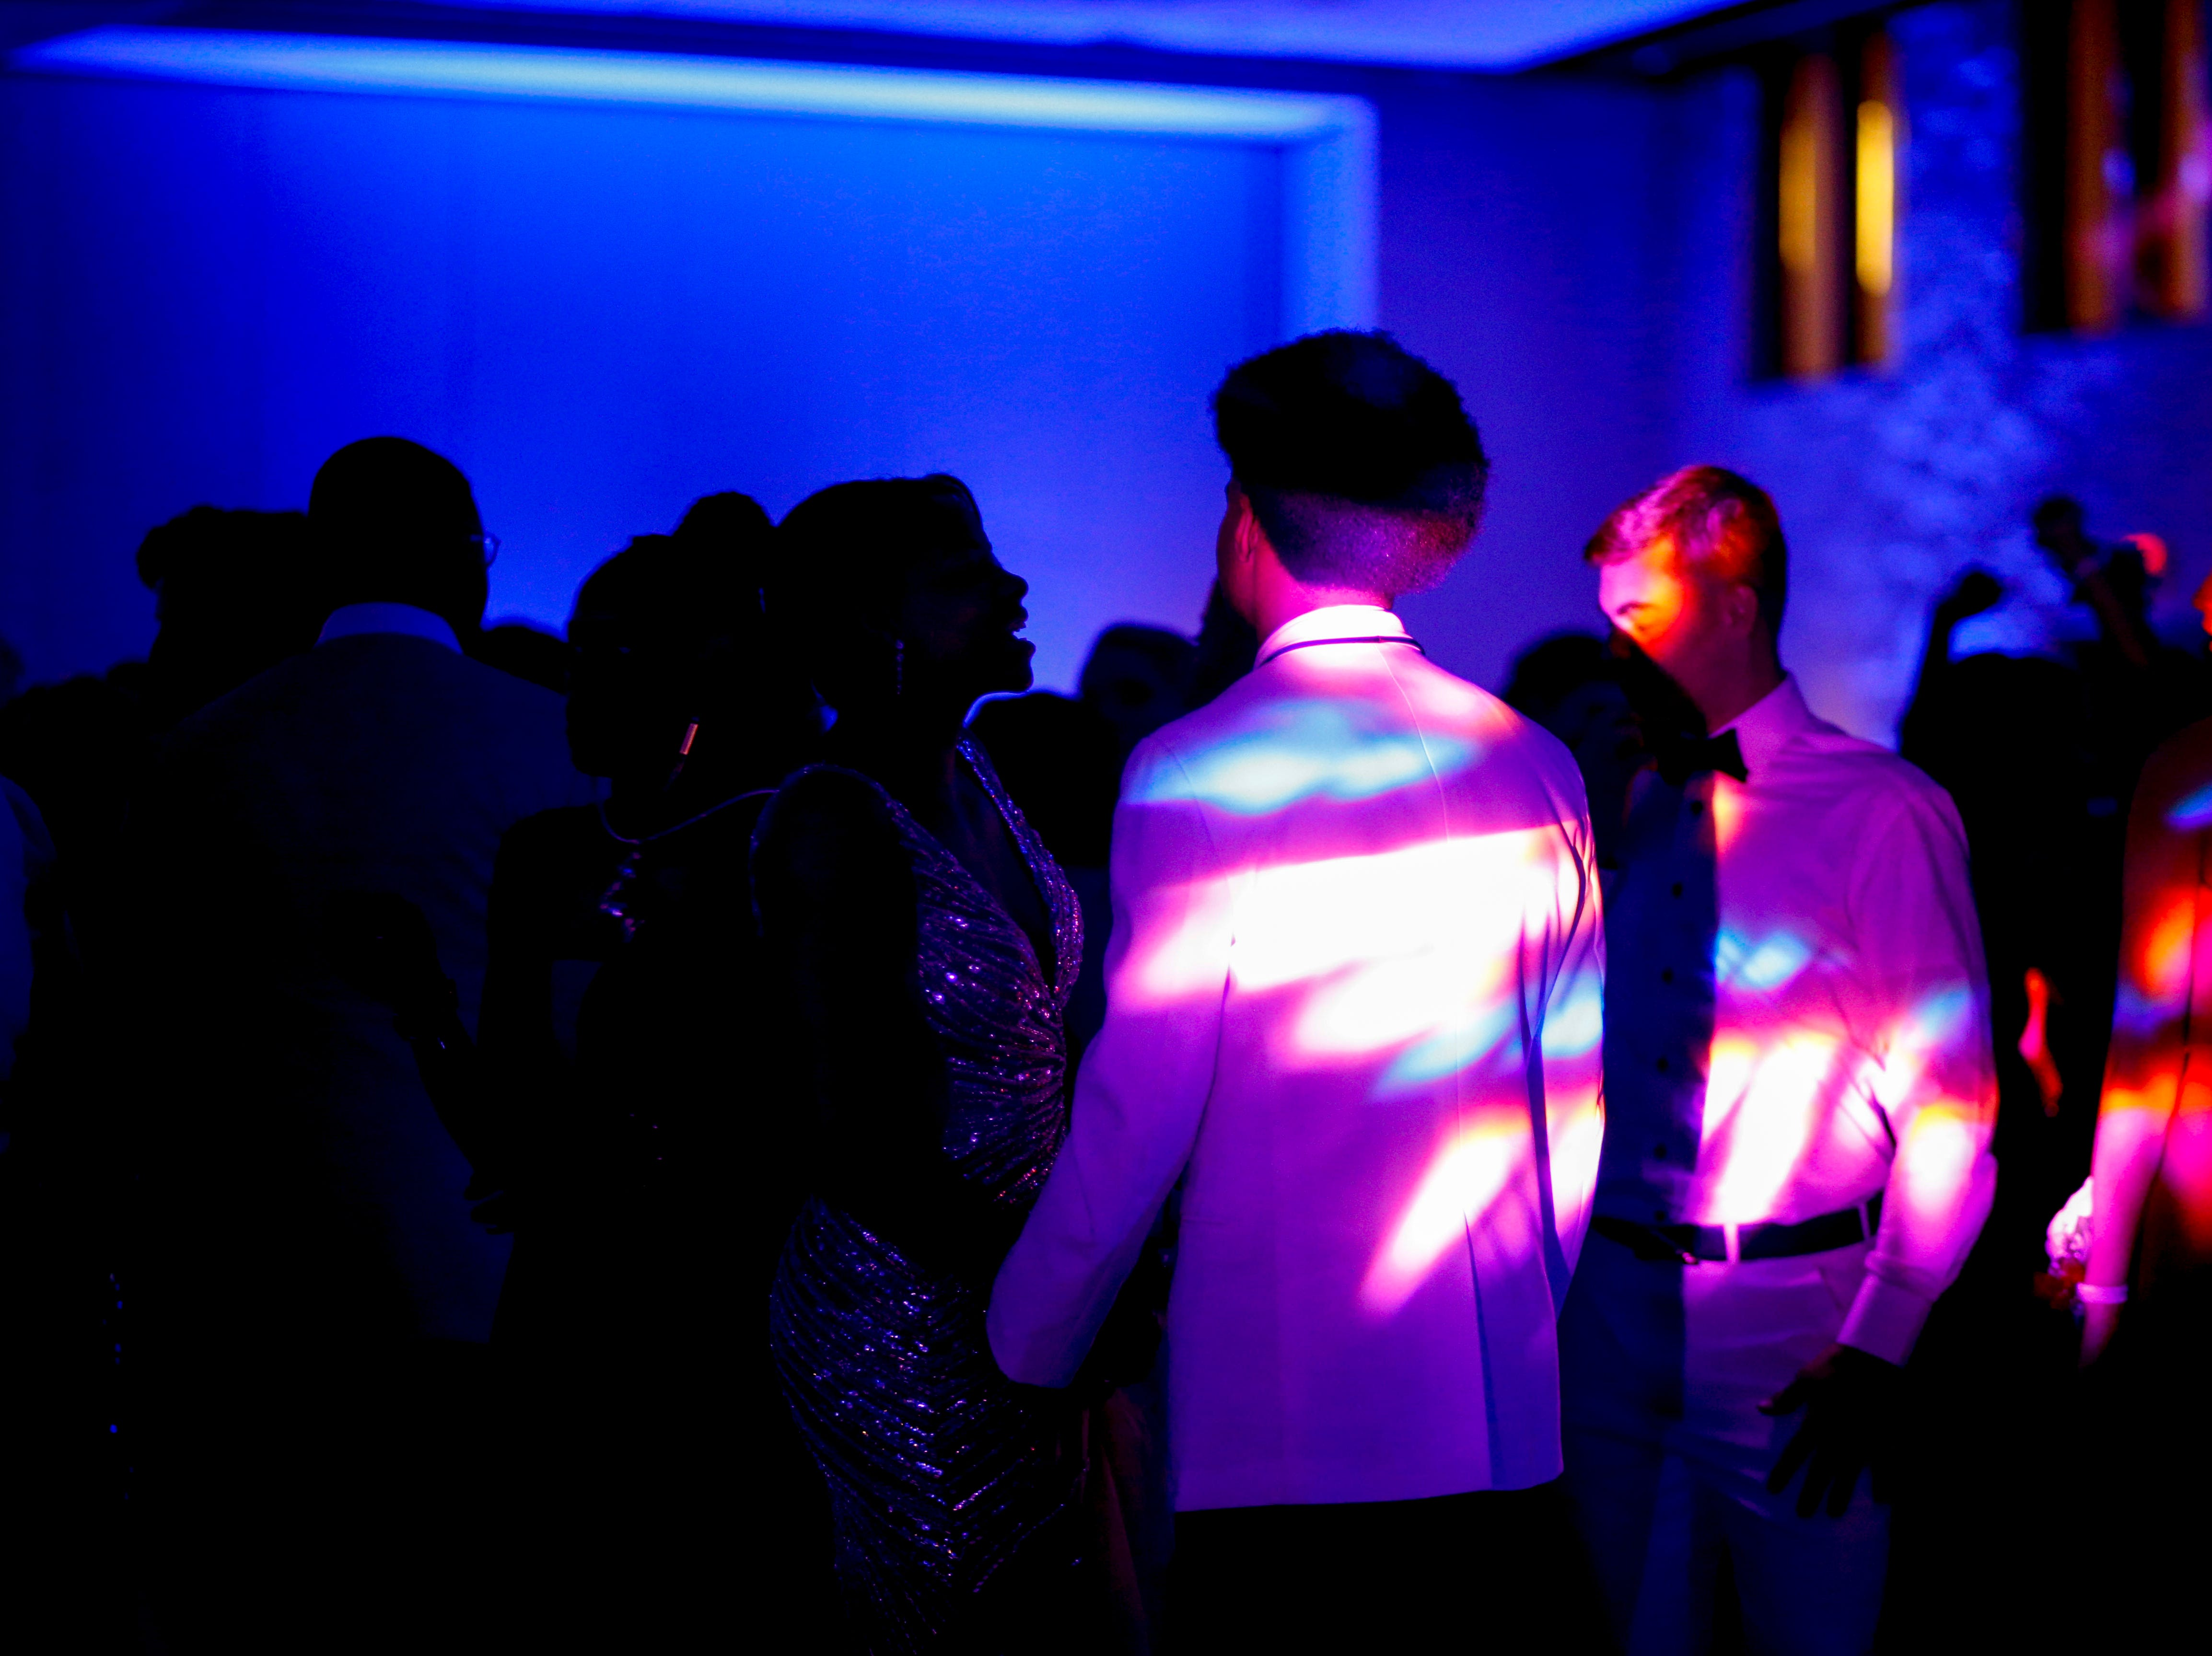 Light emitted from machines lights up students on the dance floor during Clarksville Academy's 2019 prom at The Bruce Convention Center in Hopkinsville, Ky., on Saturday, April 6, 2019.